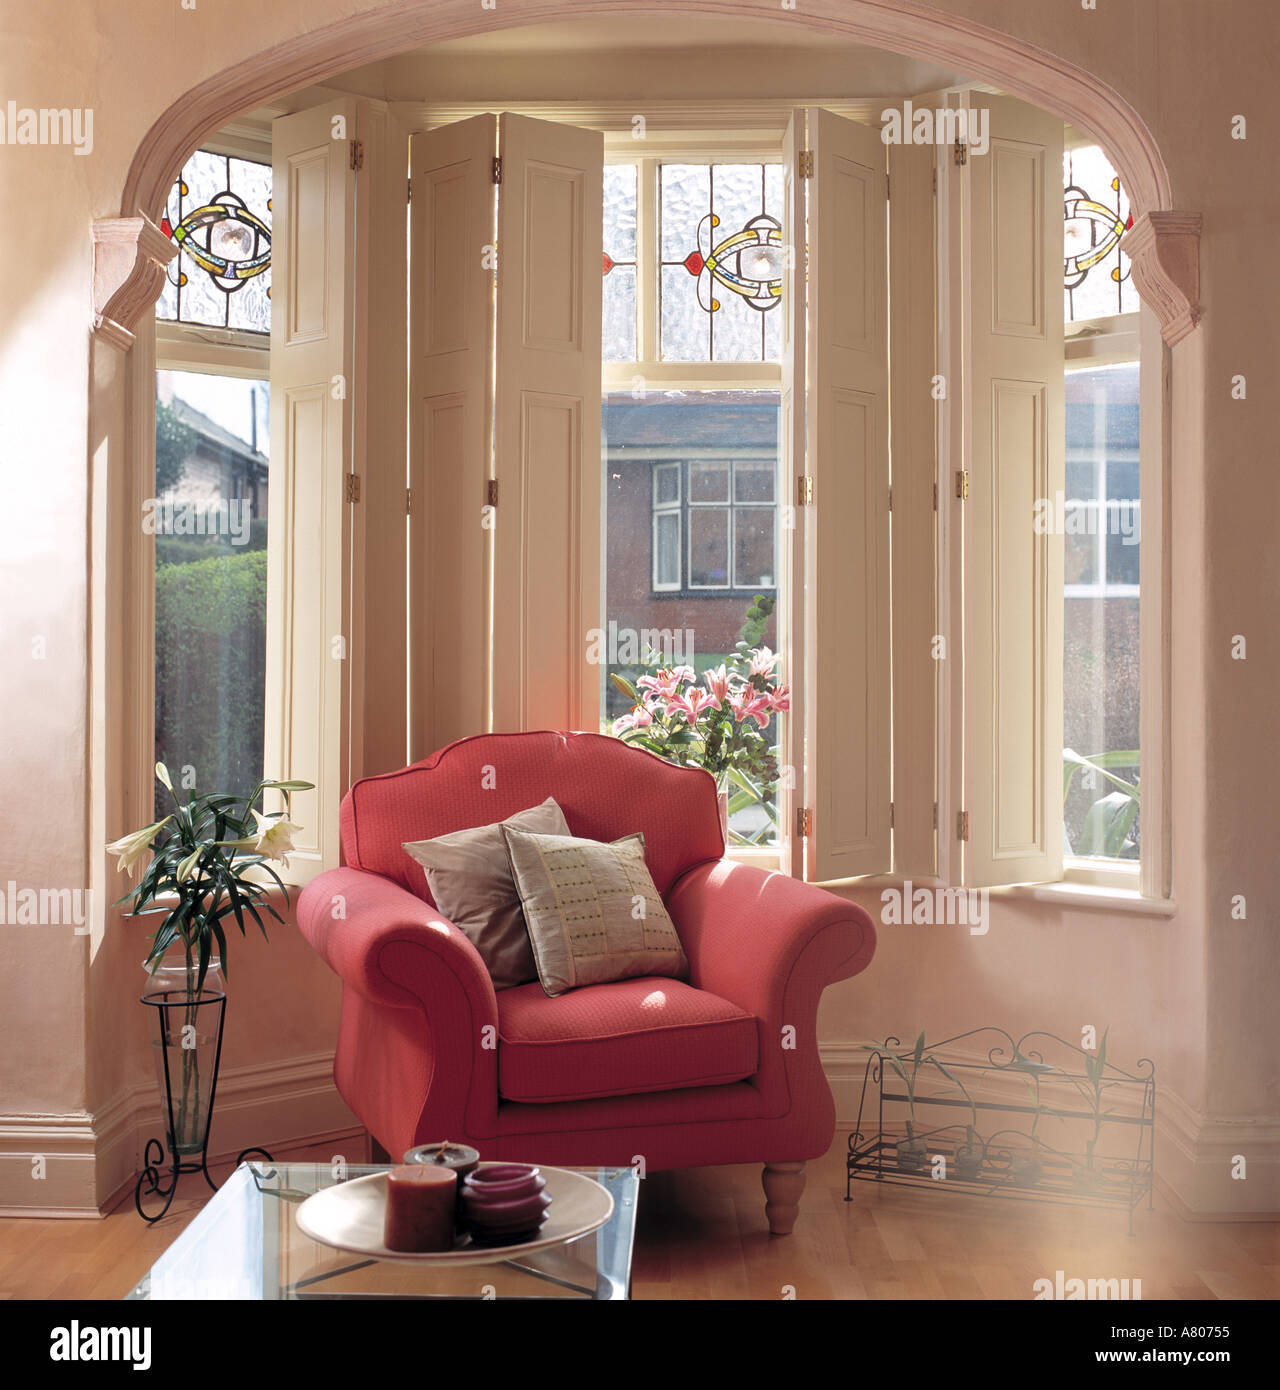 Pink Armchair In Bay Window With White Shutters And Stained